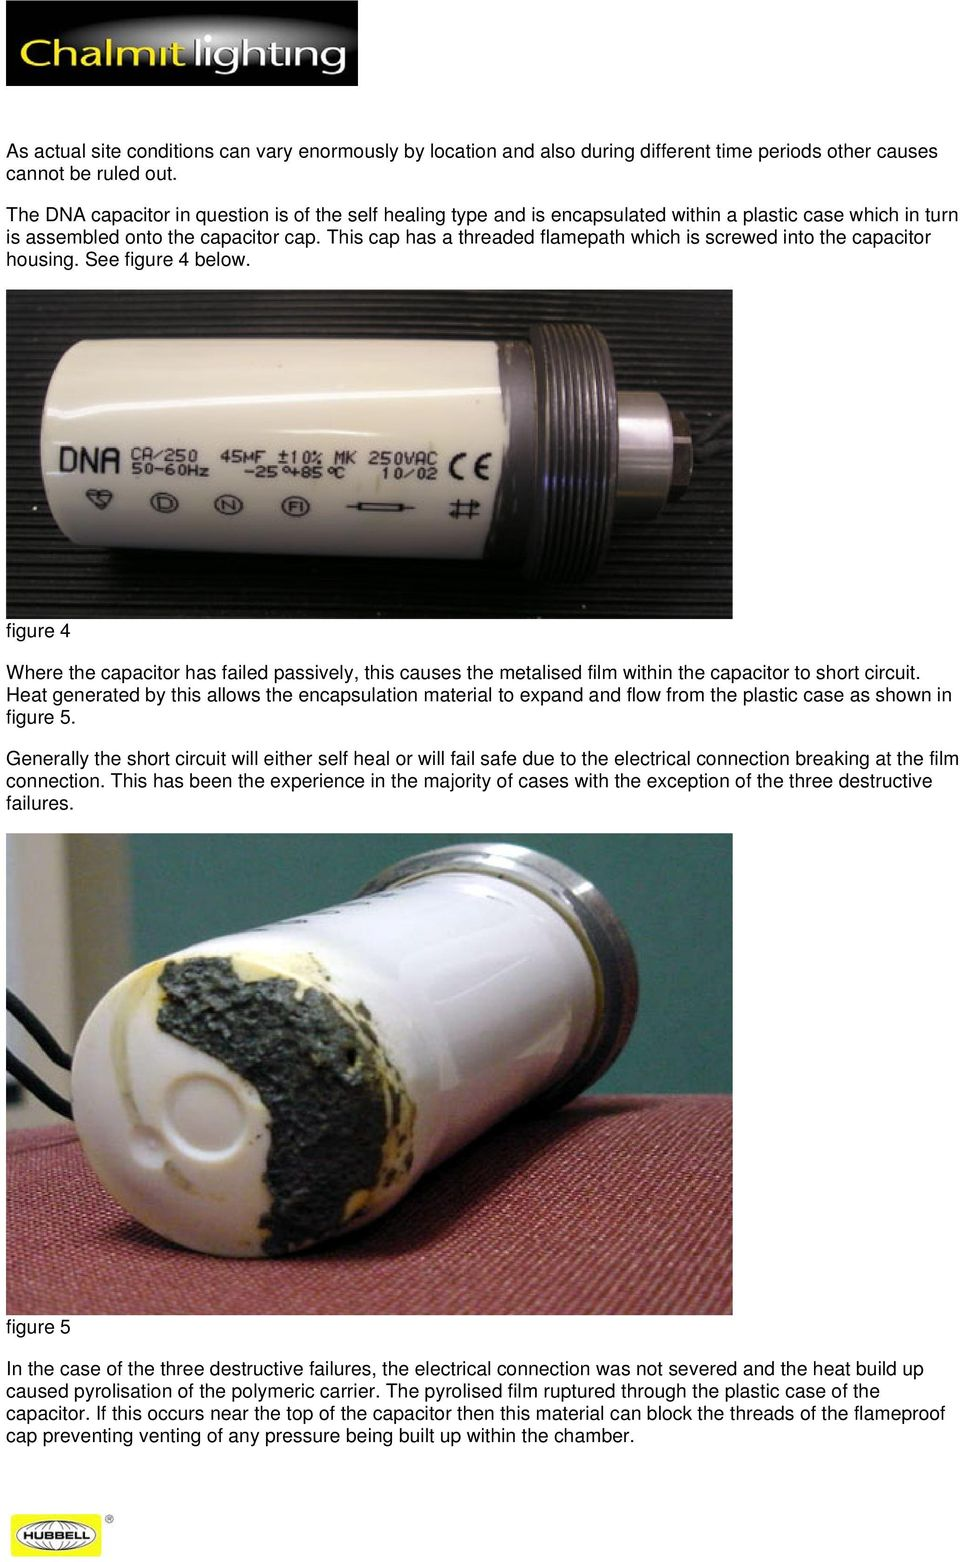 Product Safety Notice Evolution Floodlight Pdf Cmp Products Short Circuit Testing This Cap Has A Threaded Flamepath Which Is Screwed Into The Capacitor Housing See Figure